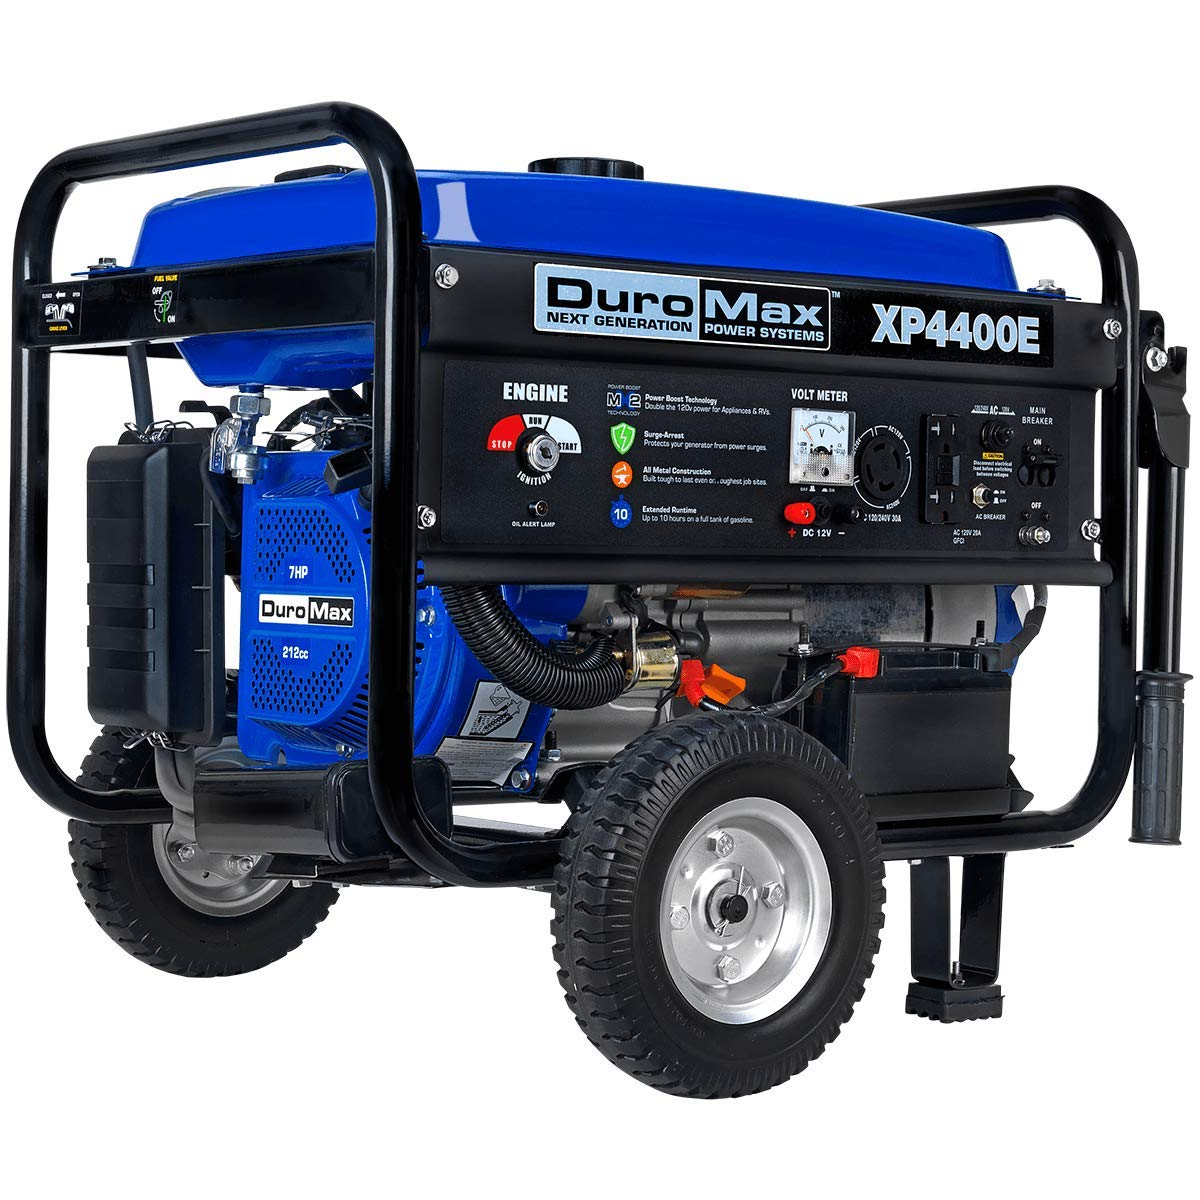 Top 10 Best Portable Generator (2020 Reviews & Buying Guide) 1